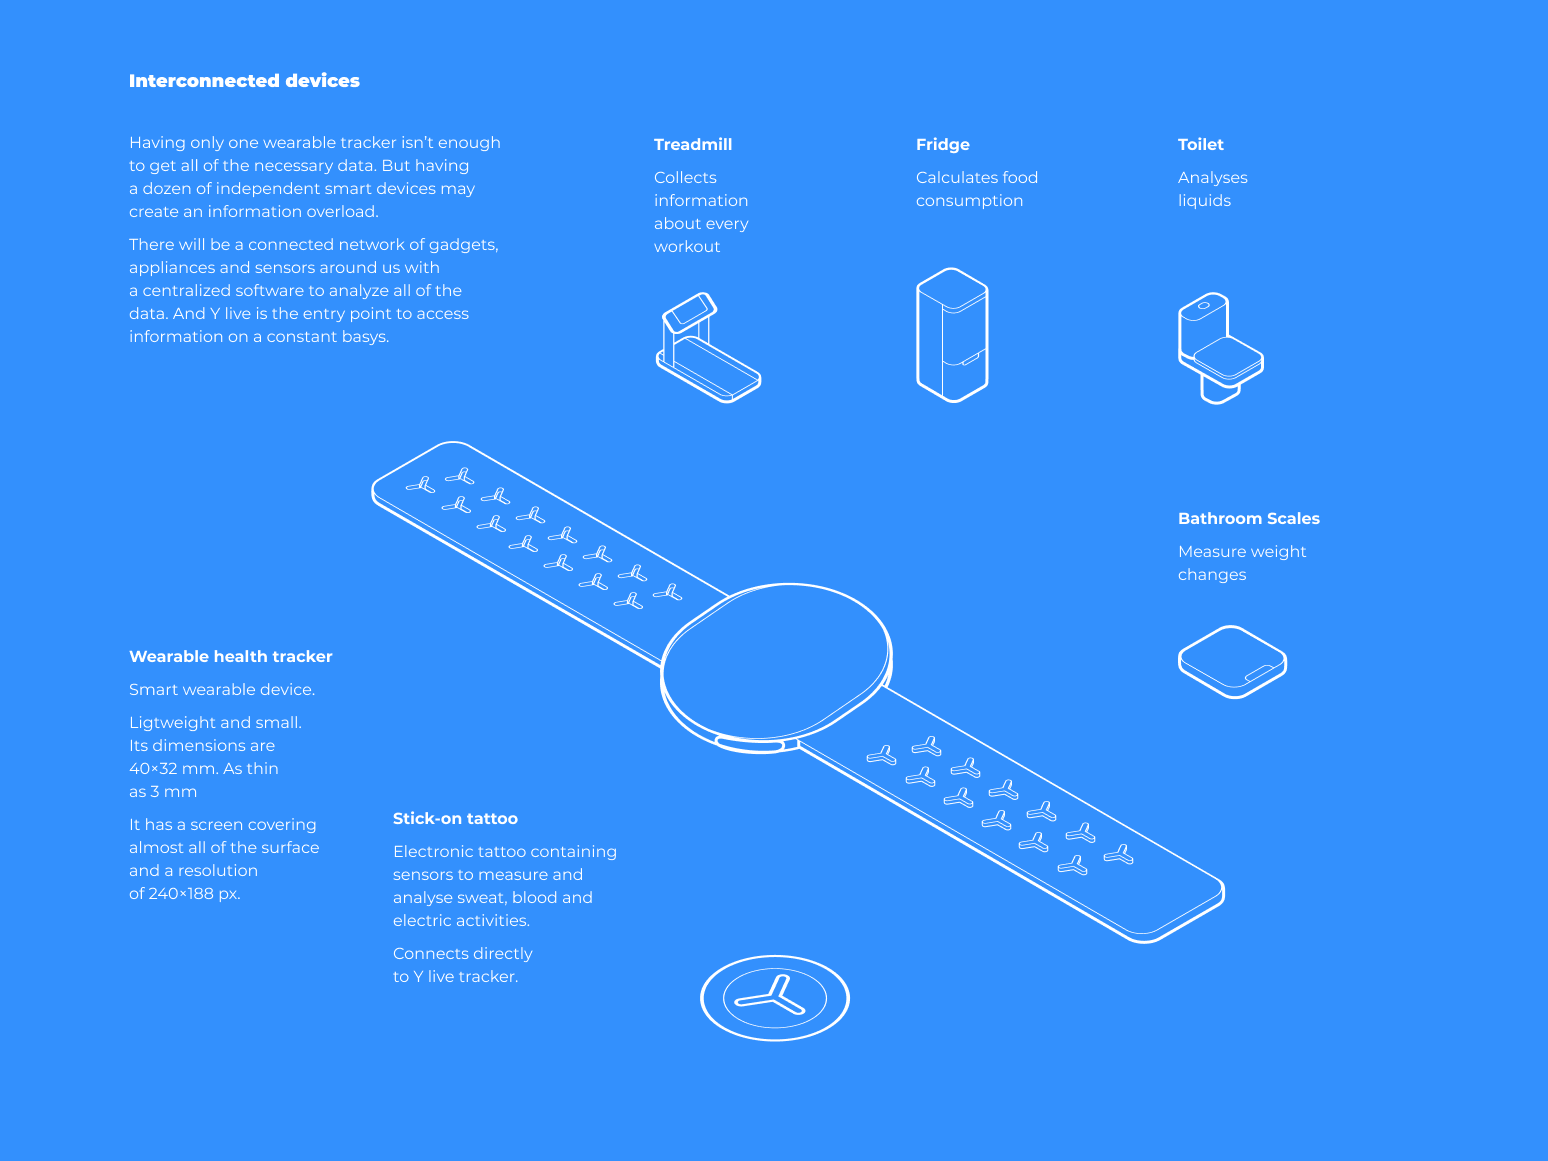 Health tracker in the world of interconnected devices health tattoo scales toilet treadmill fridge tracker smarthome